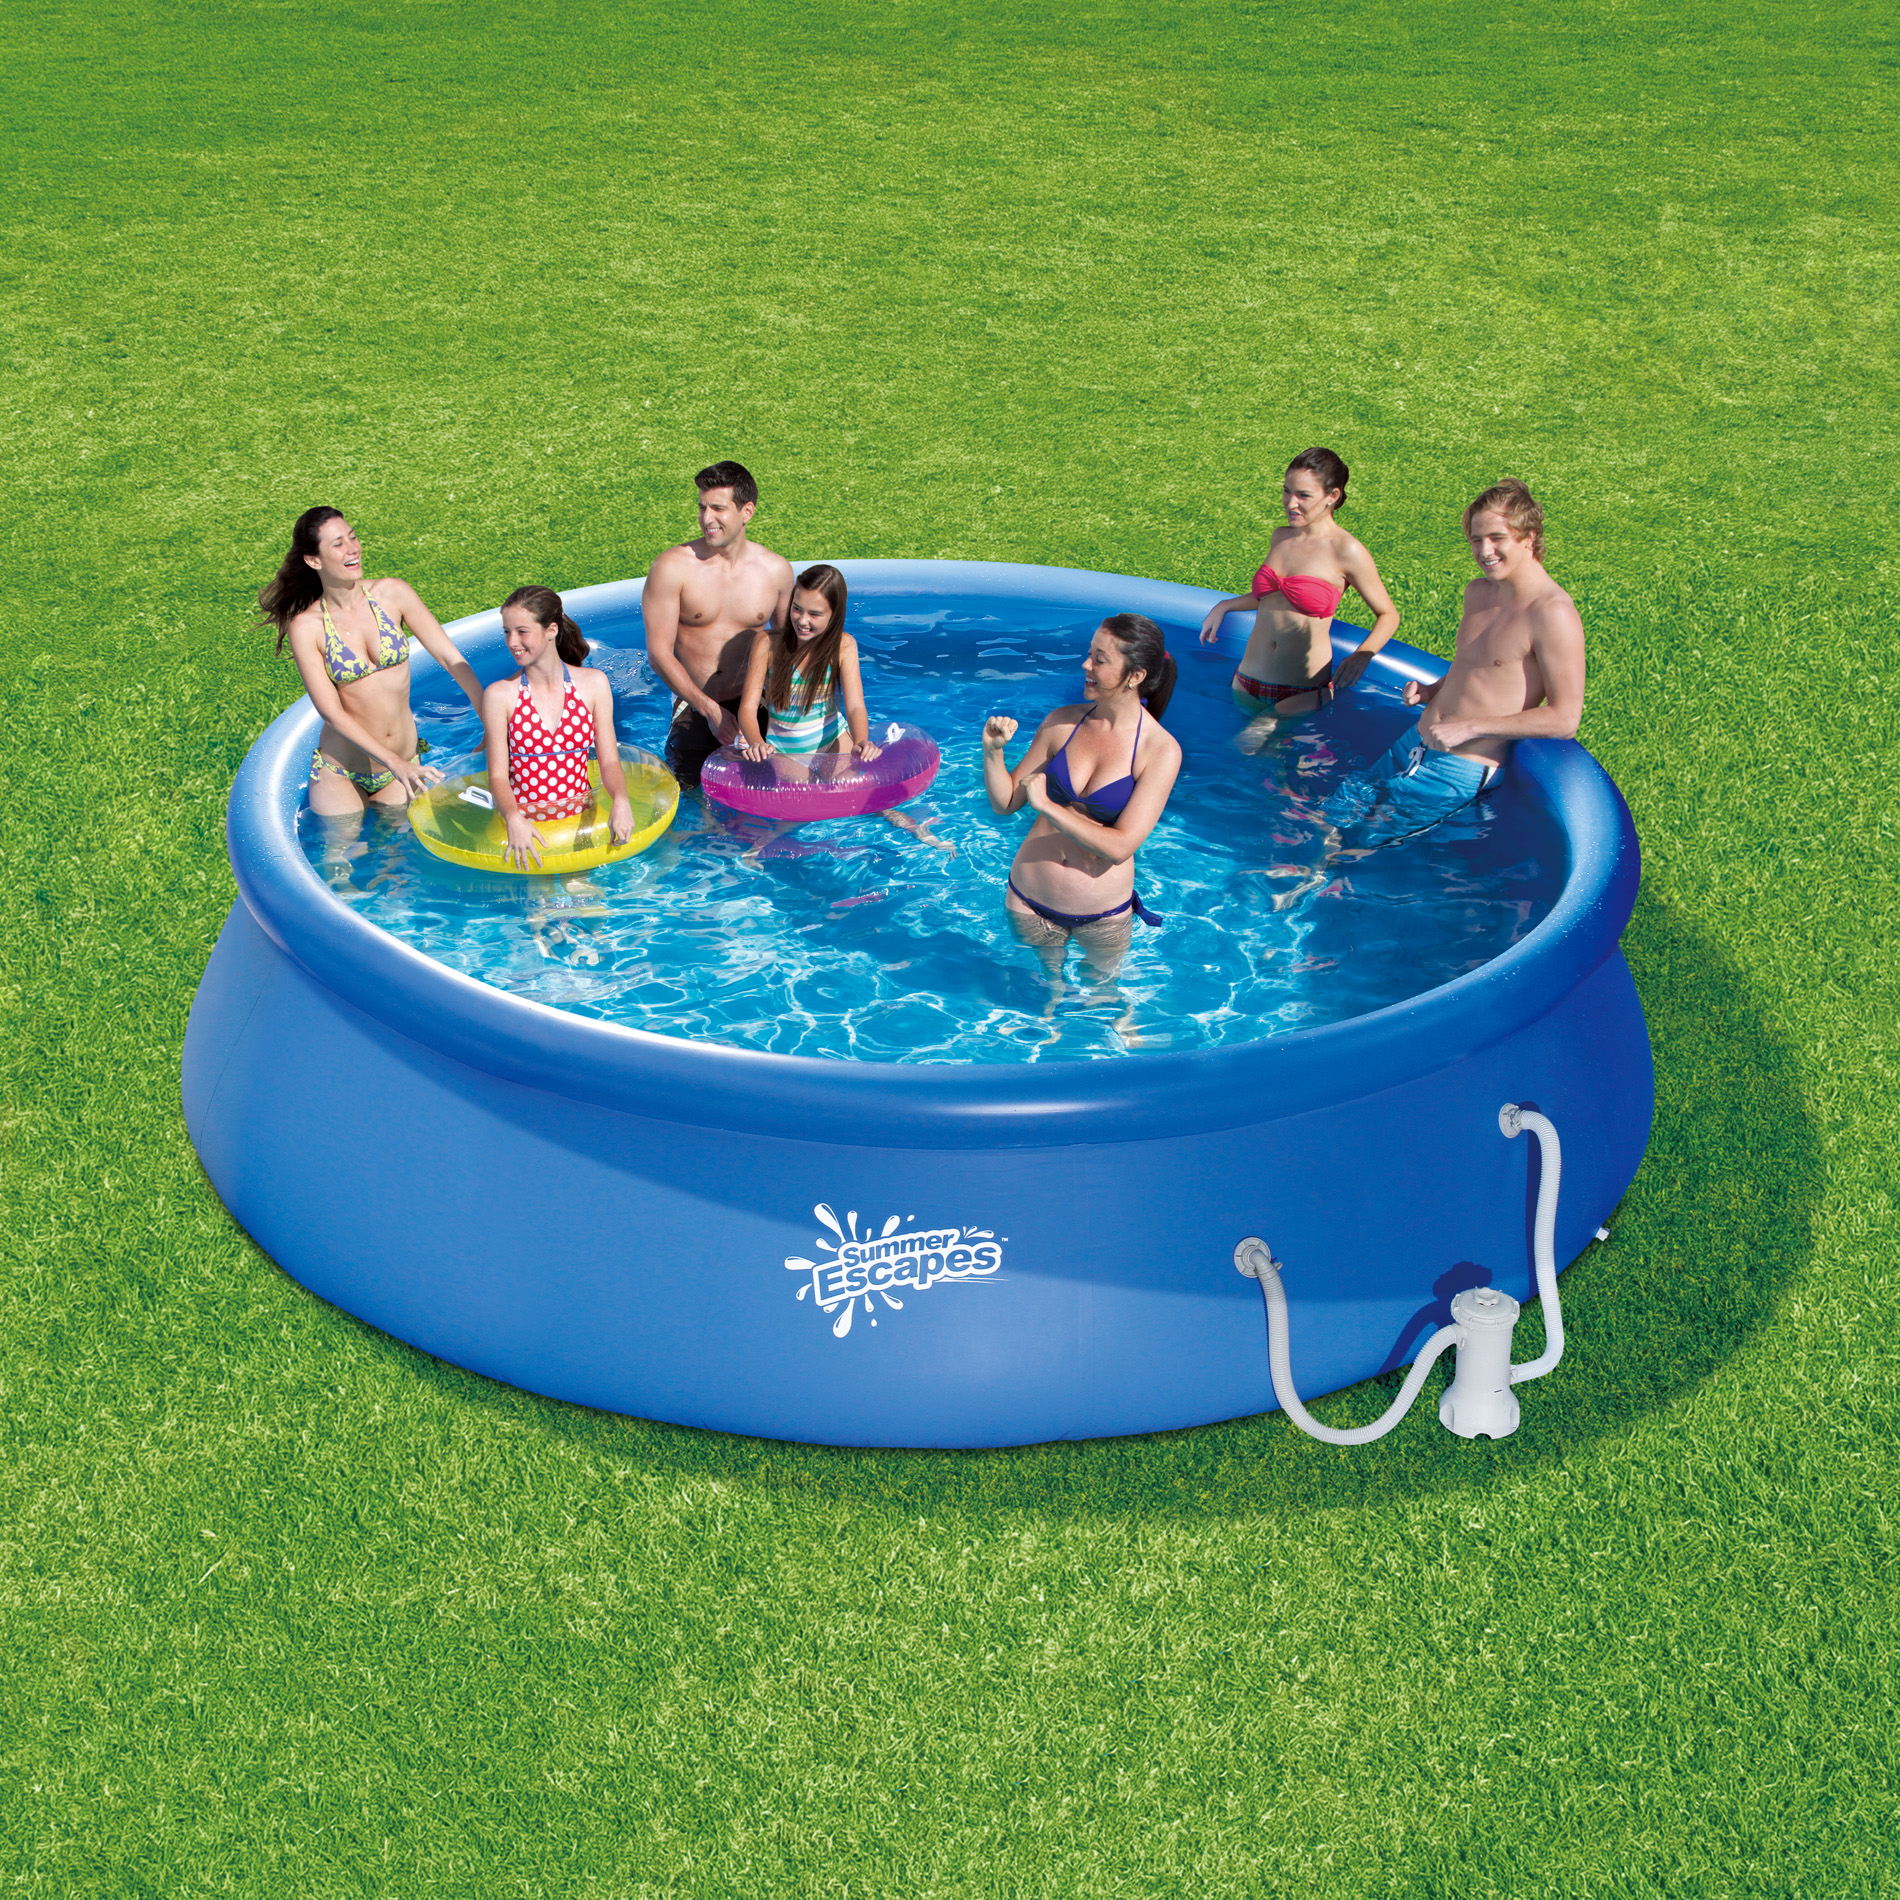 Chlortabletten Quick Up Pool 14 Foot Quick Set Inflatable Family Pool At Kmart